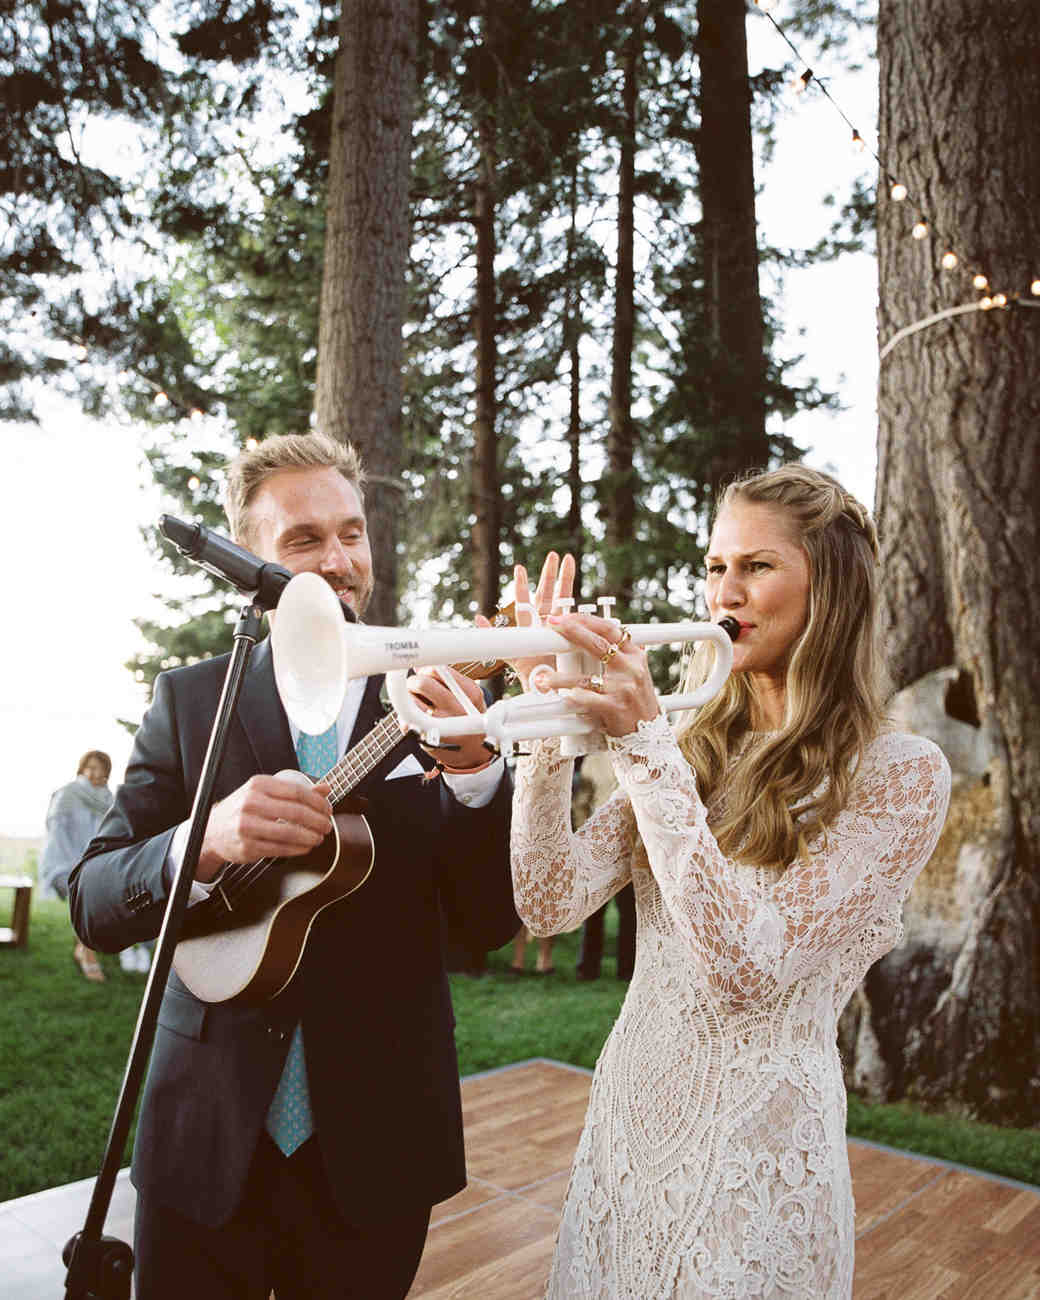 Processional Songs For Weddings: A Summer Camp-Inspired Wedding By Lake Tahoe